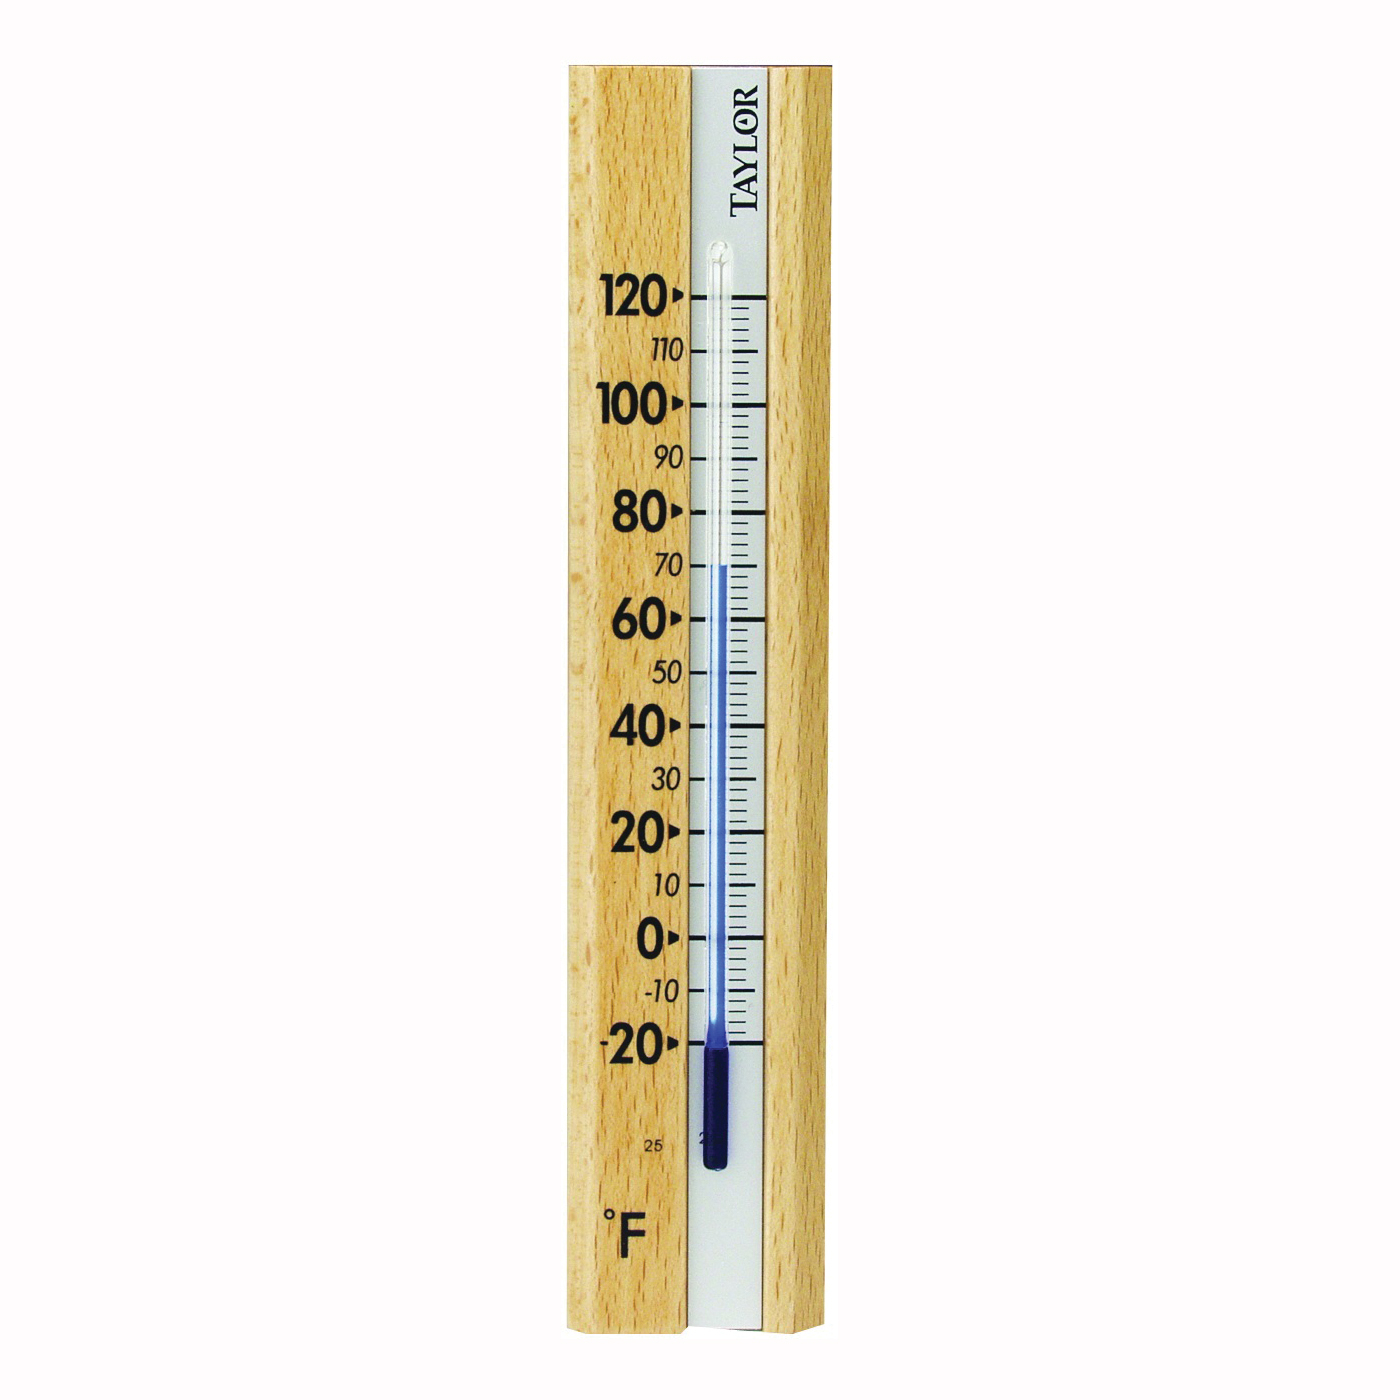 Picture of Taylor 5141 Thermometer, -20 to 120 deg F, Wood Casing